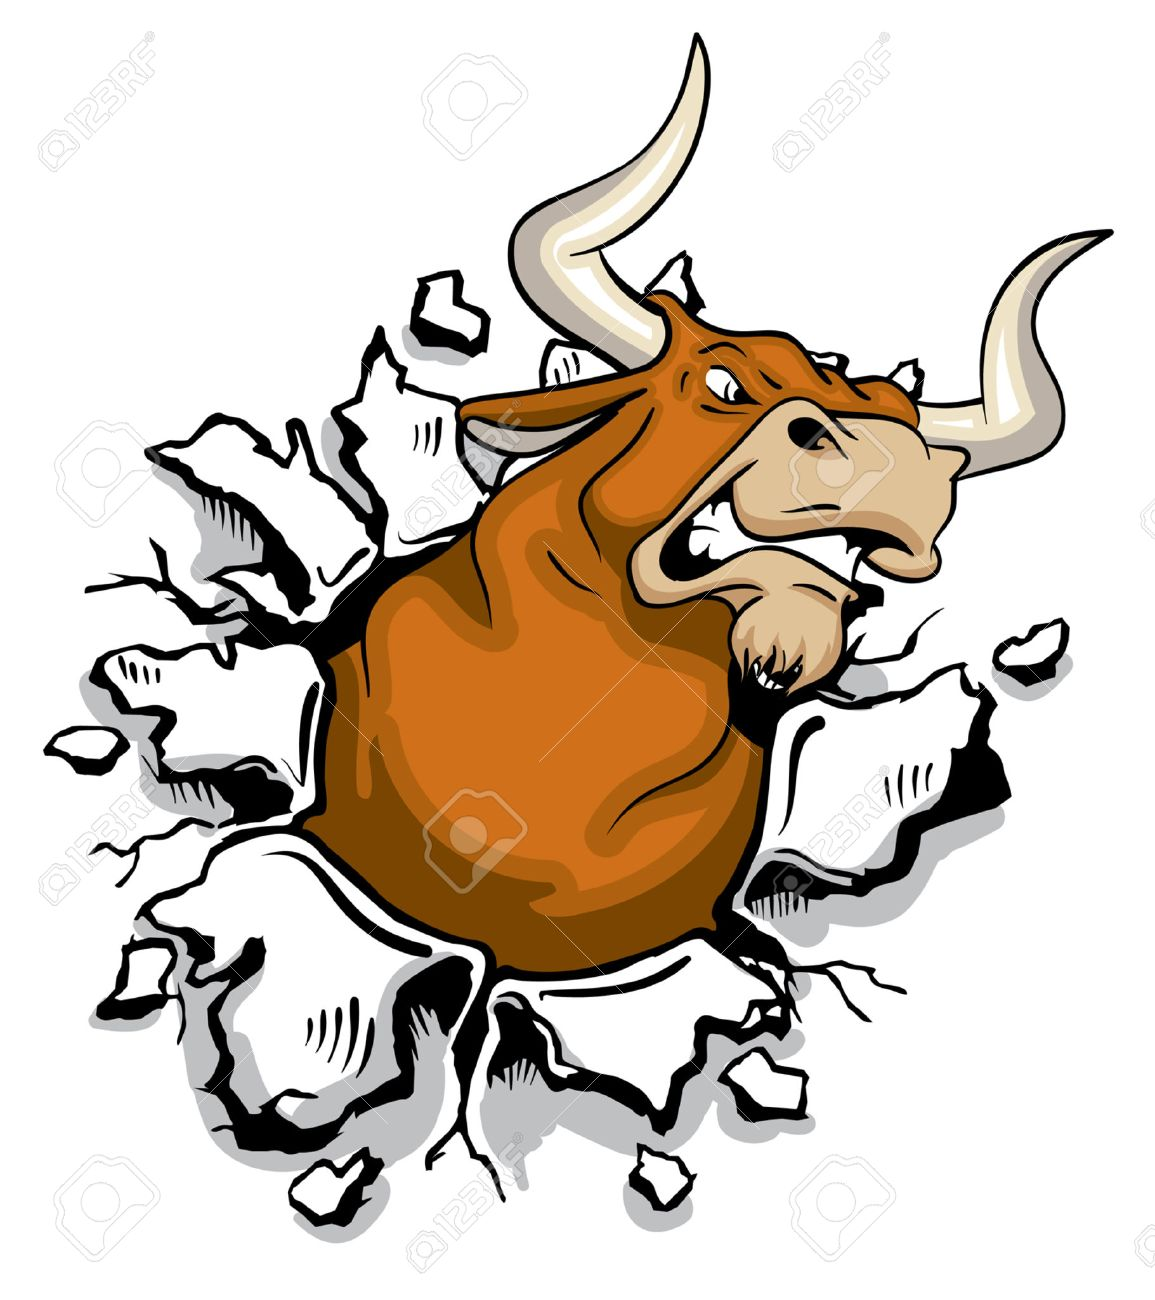 28,646 Bull Stock Vector Illustration And Royalty Free Bull Clipart